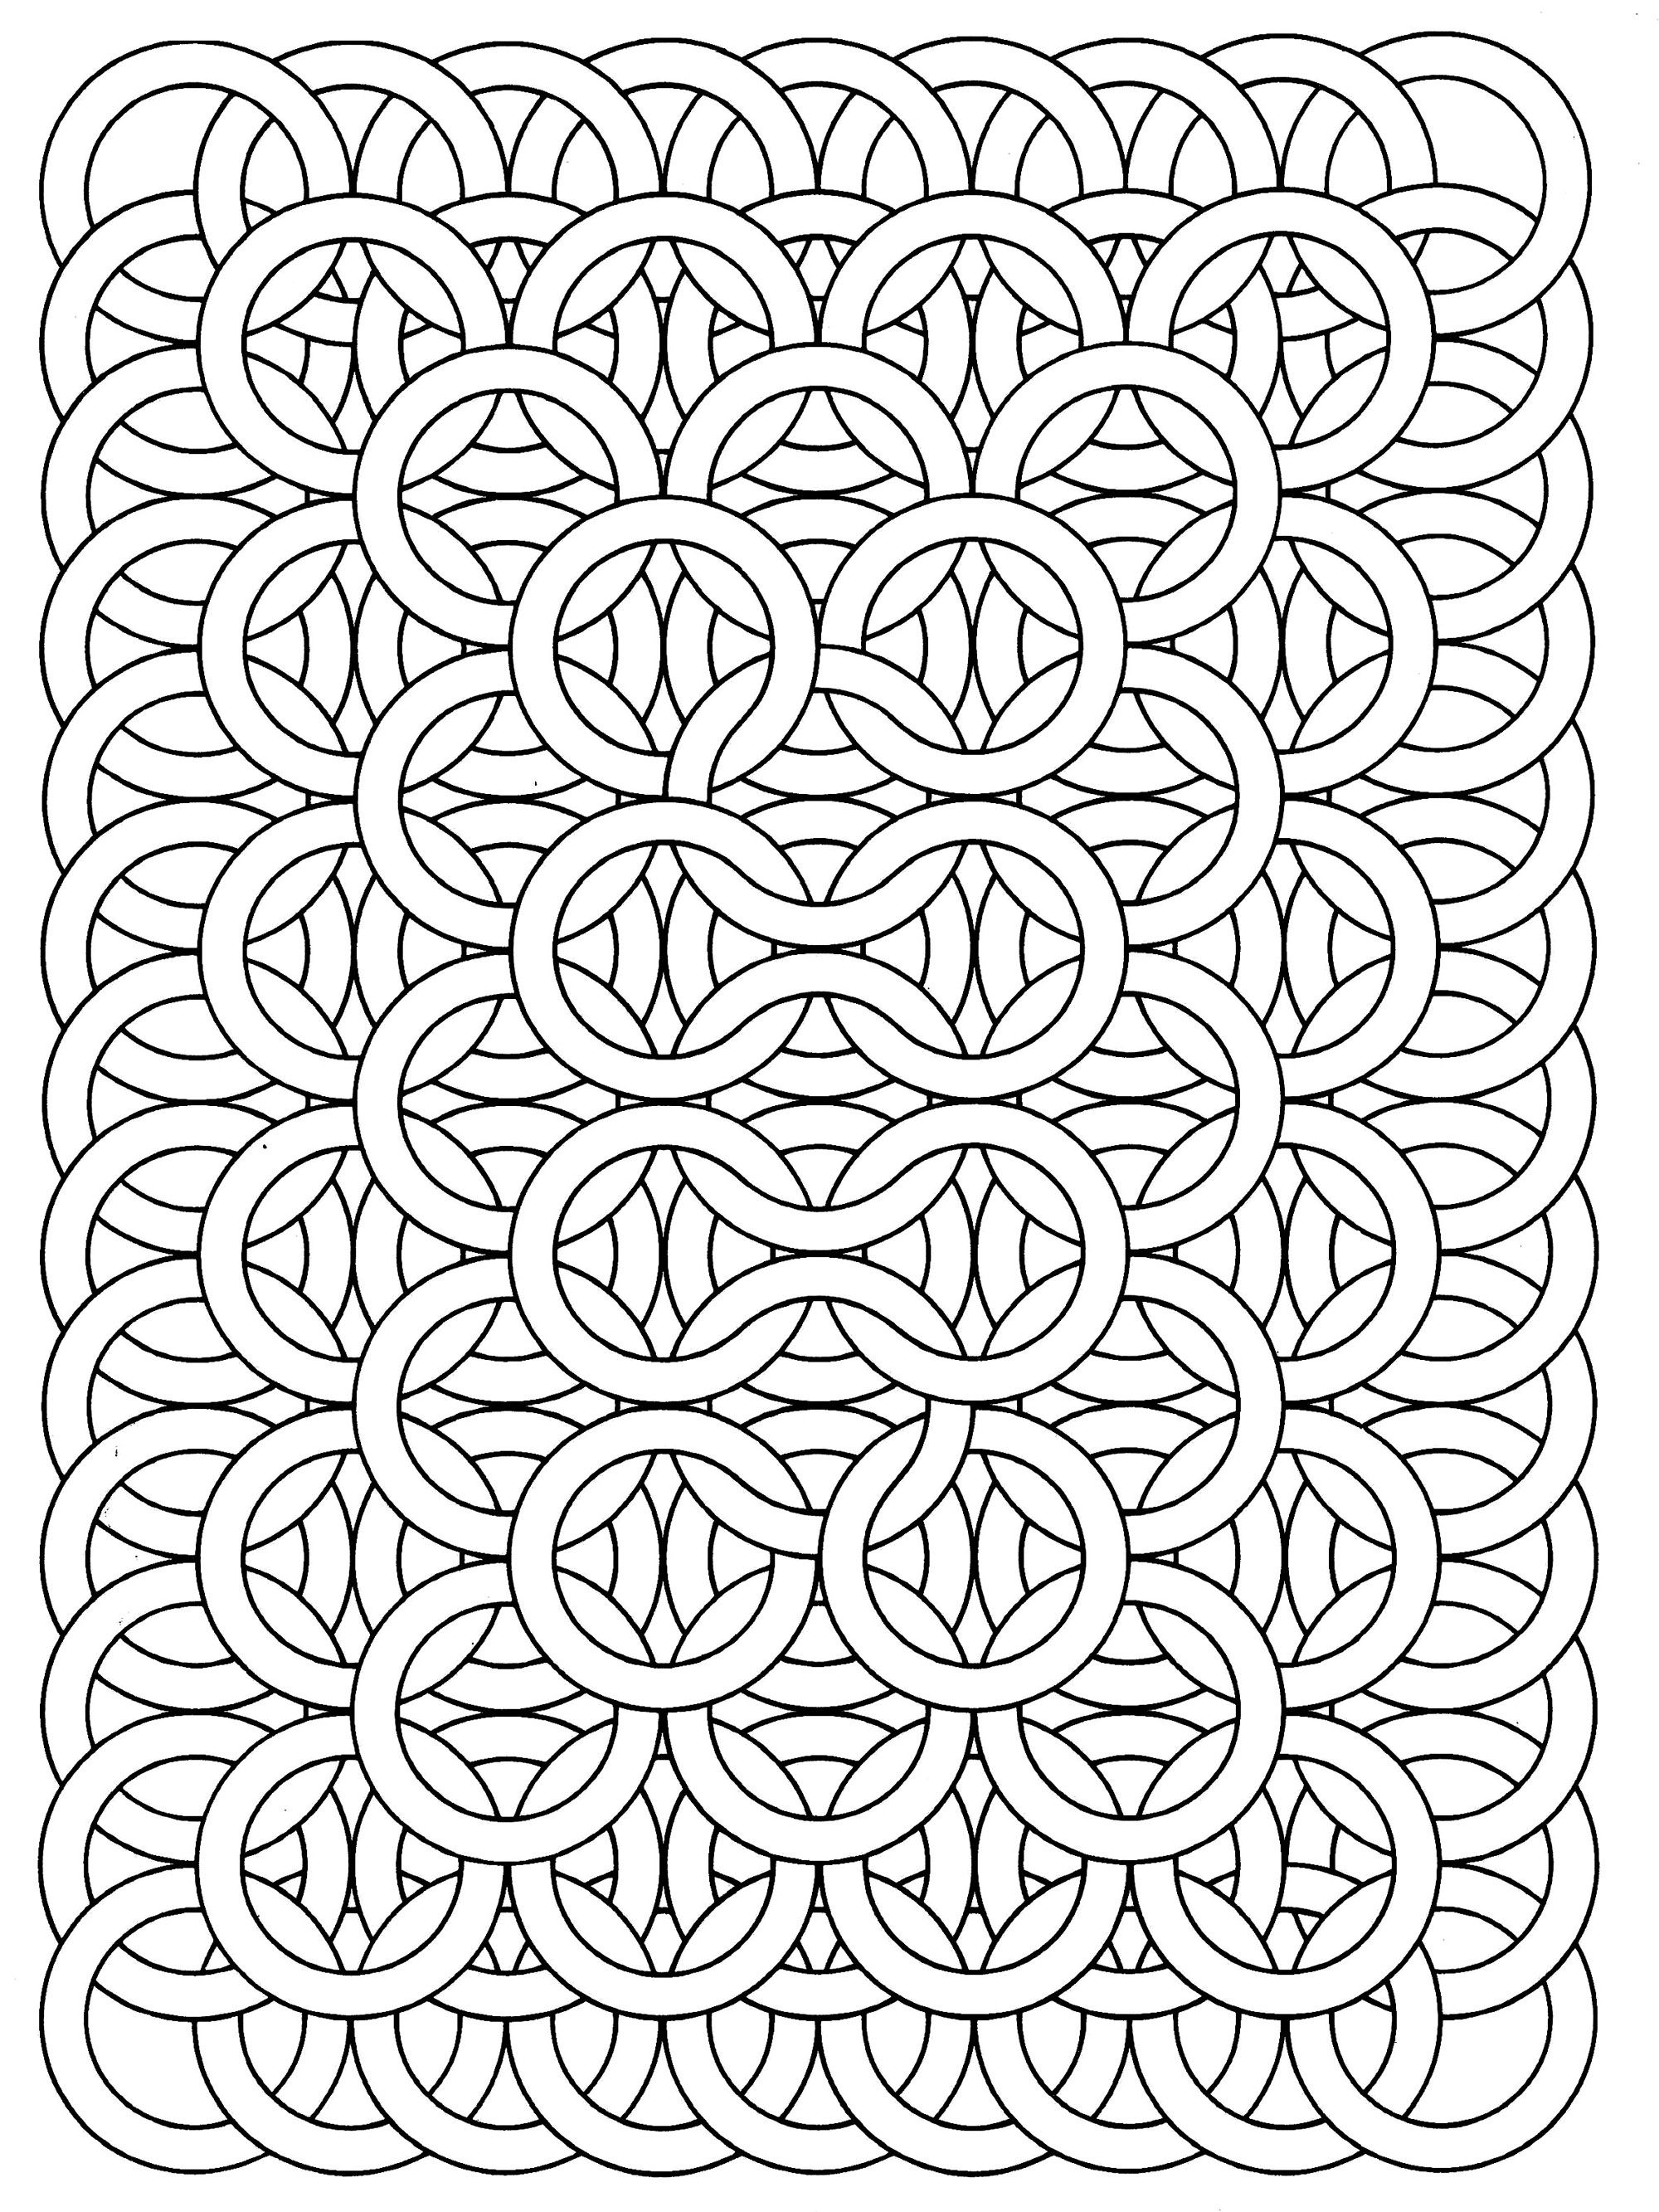 to print this free coloring page coloring op art jean larcher 17